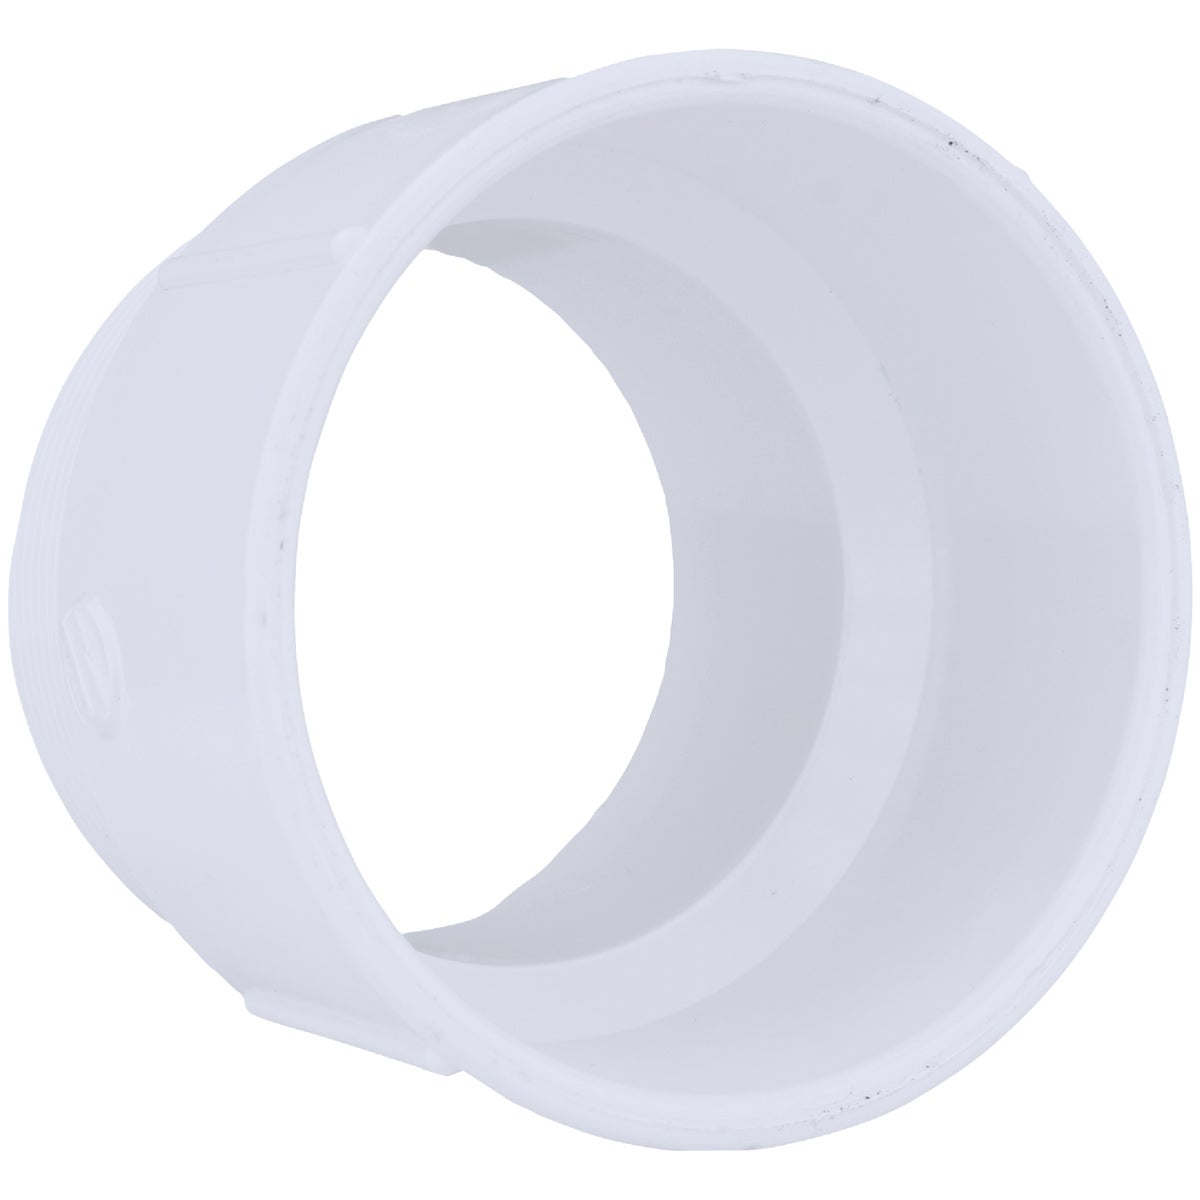 "4"" PVC-DWV MALE ADAPTER - 70440 by Genova Inc  Pvc Dwv"